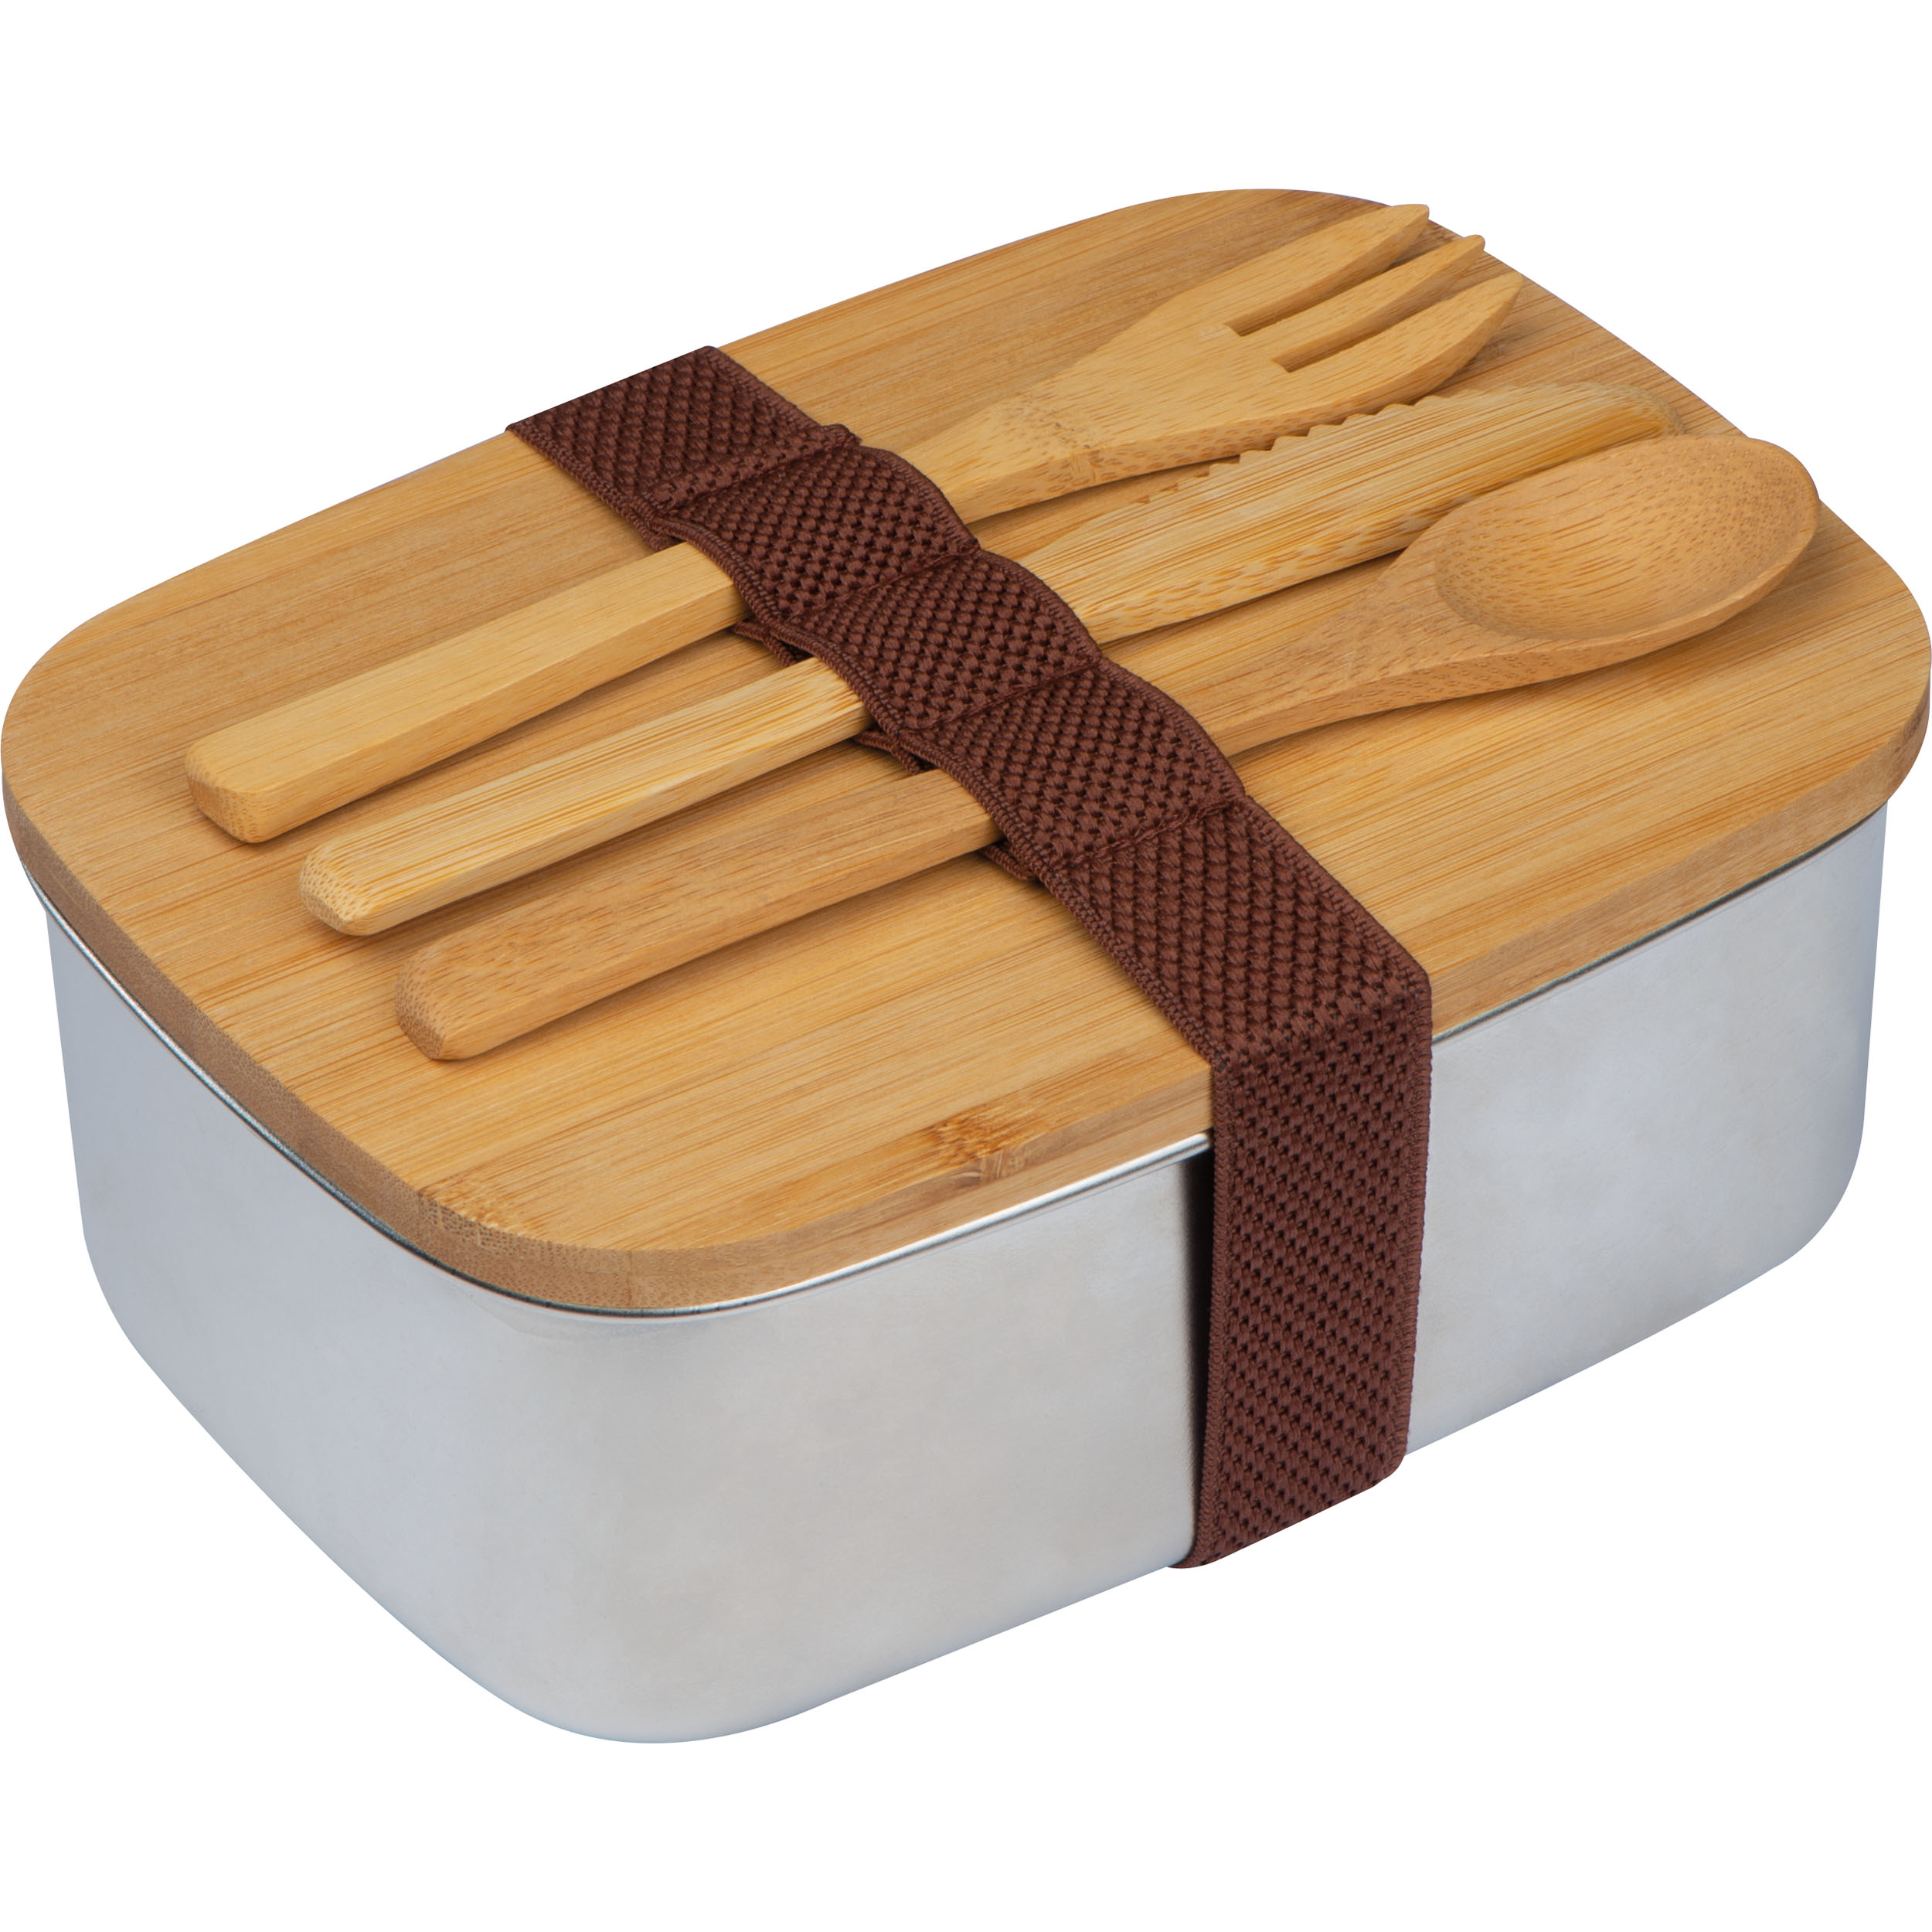 Spacious Stainless Steel Lunchbox with Bamboo Lid